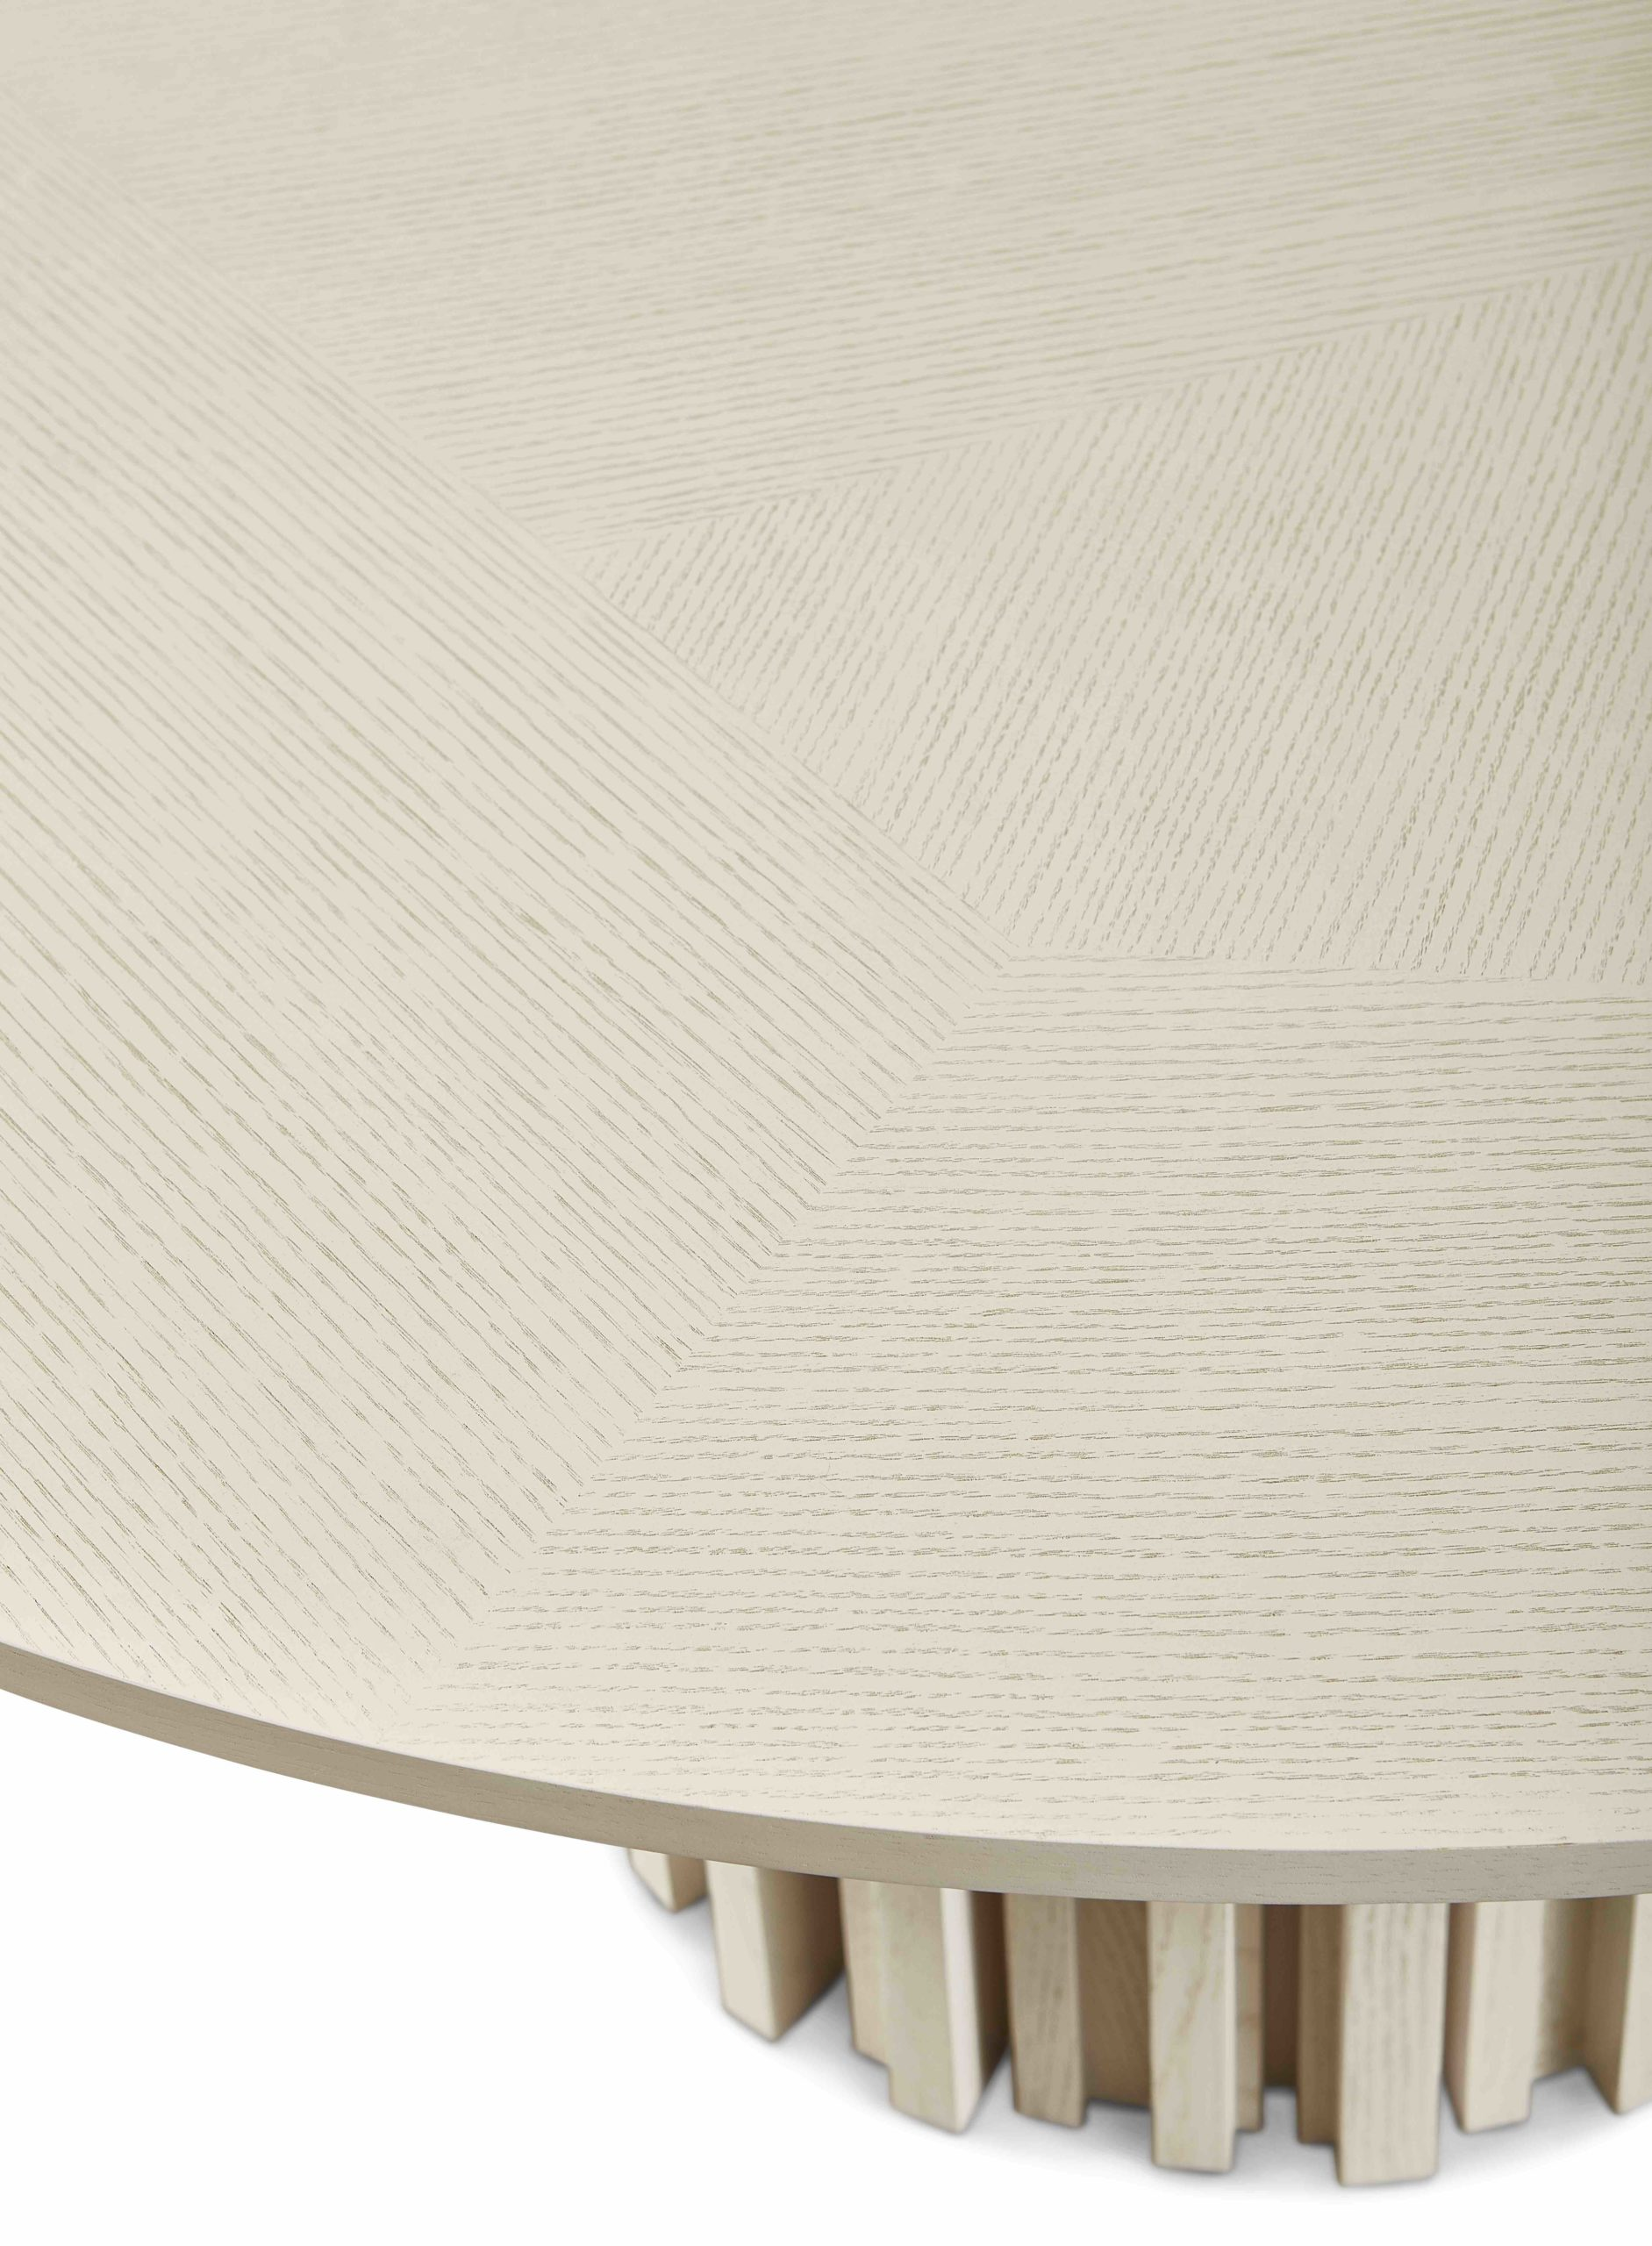 Baker_products_WNWN_huxley_round_dining_table_BAA3054_DETAIL-scaled-6